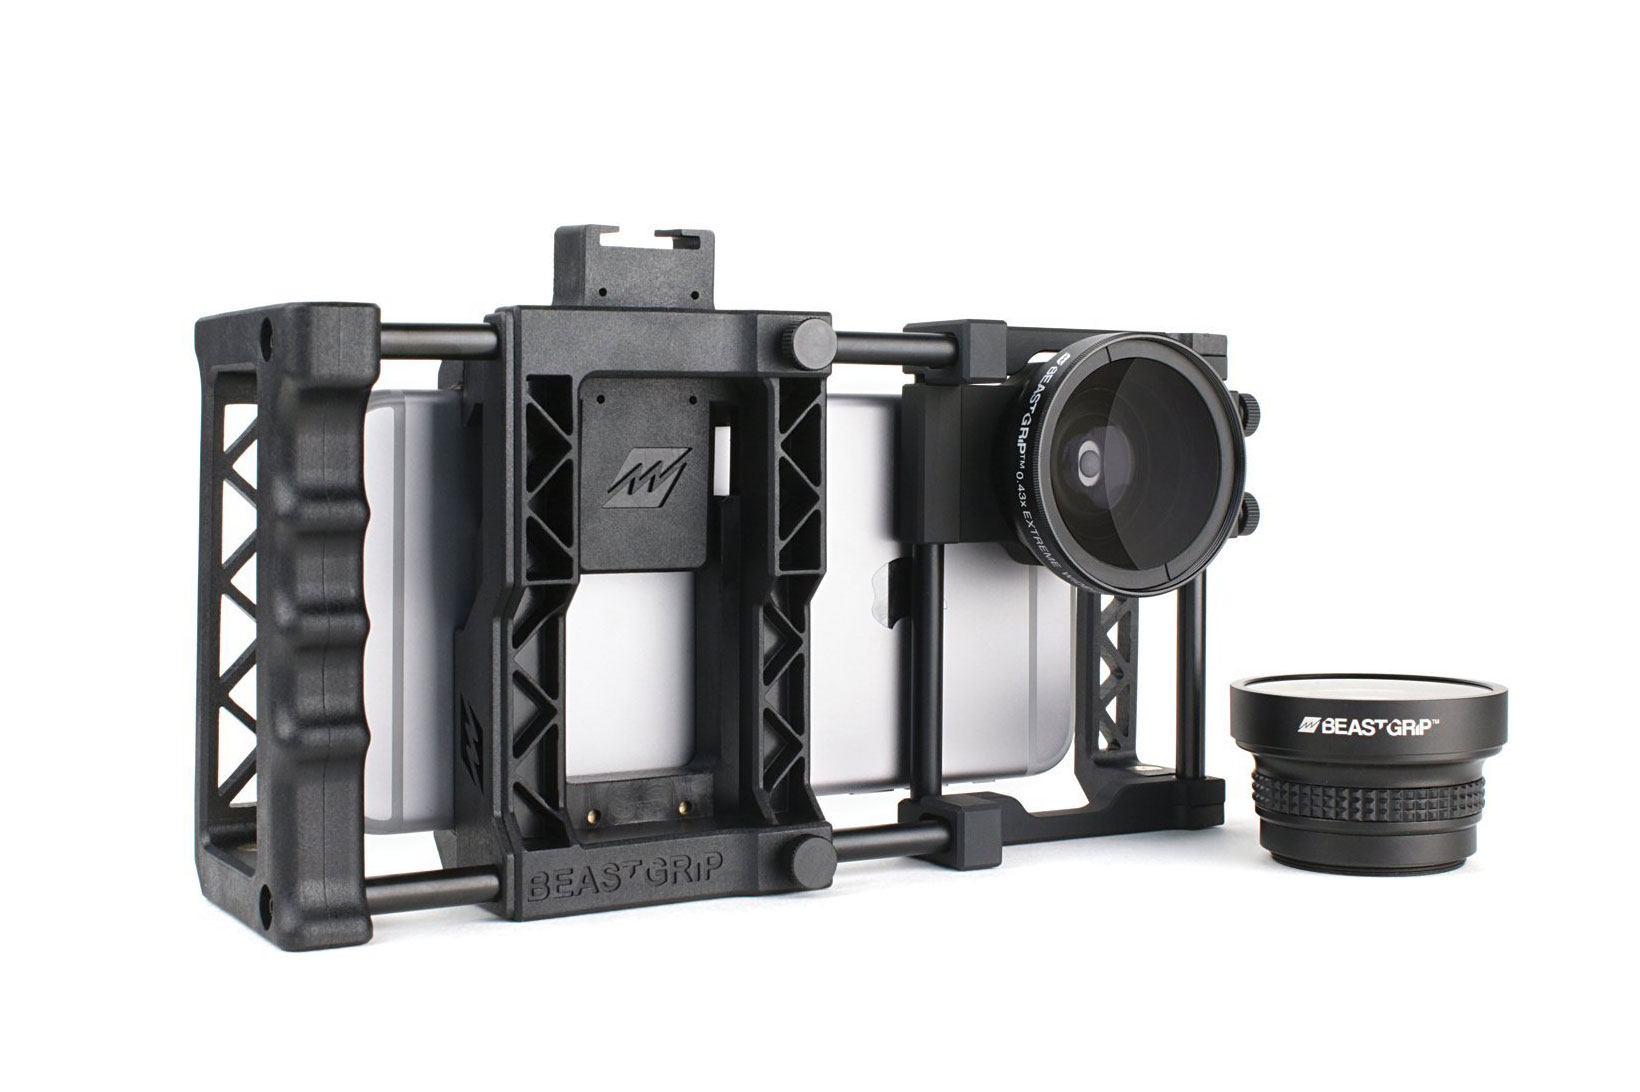 BeastGrip's Phone Camera Rig Allows for a Variety of Add-Ons